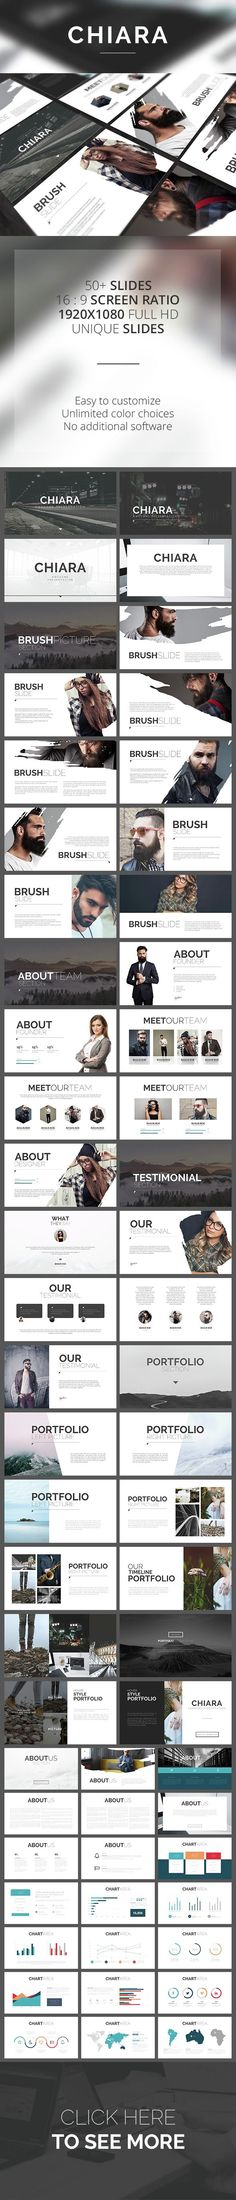 Business infographic : Chiara PowerPoint Template (PowerPoint Templates)   Stunning Resources for designers  OrTheme